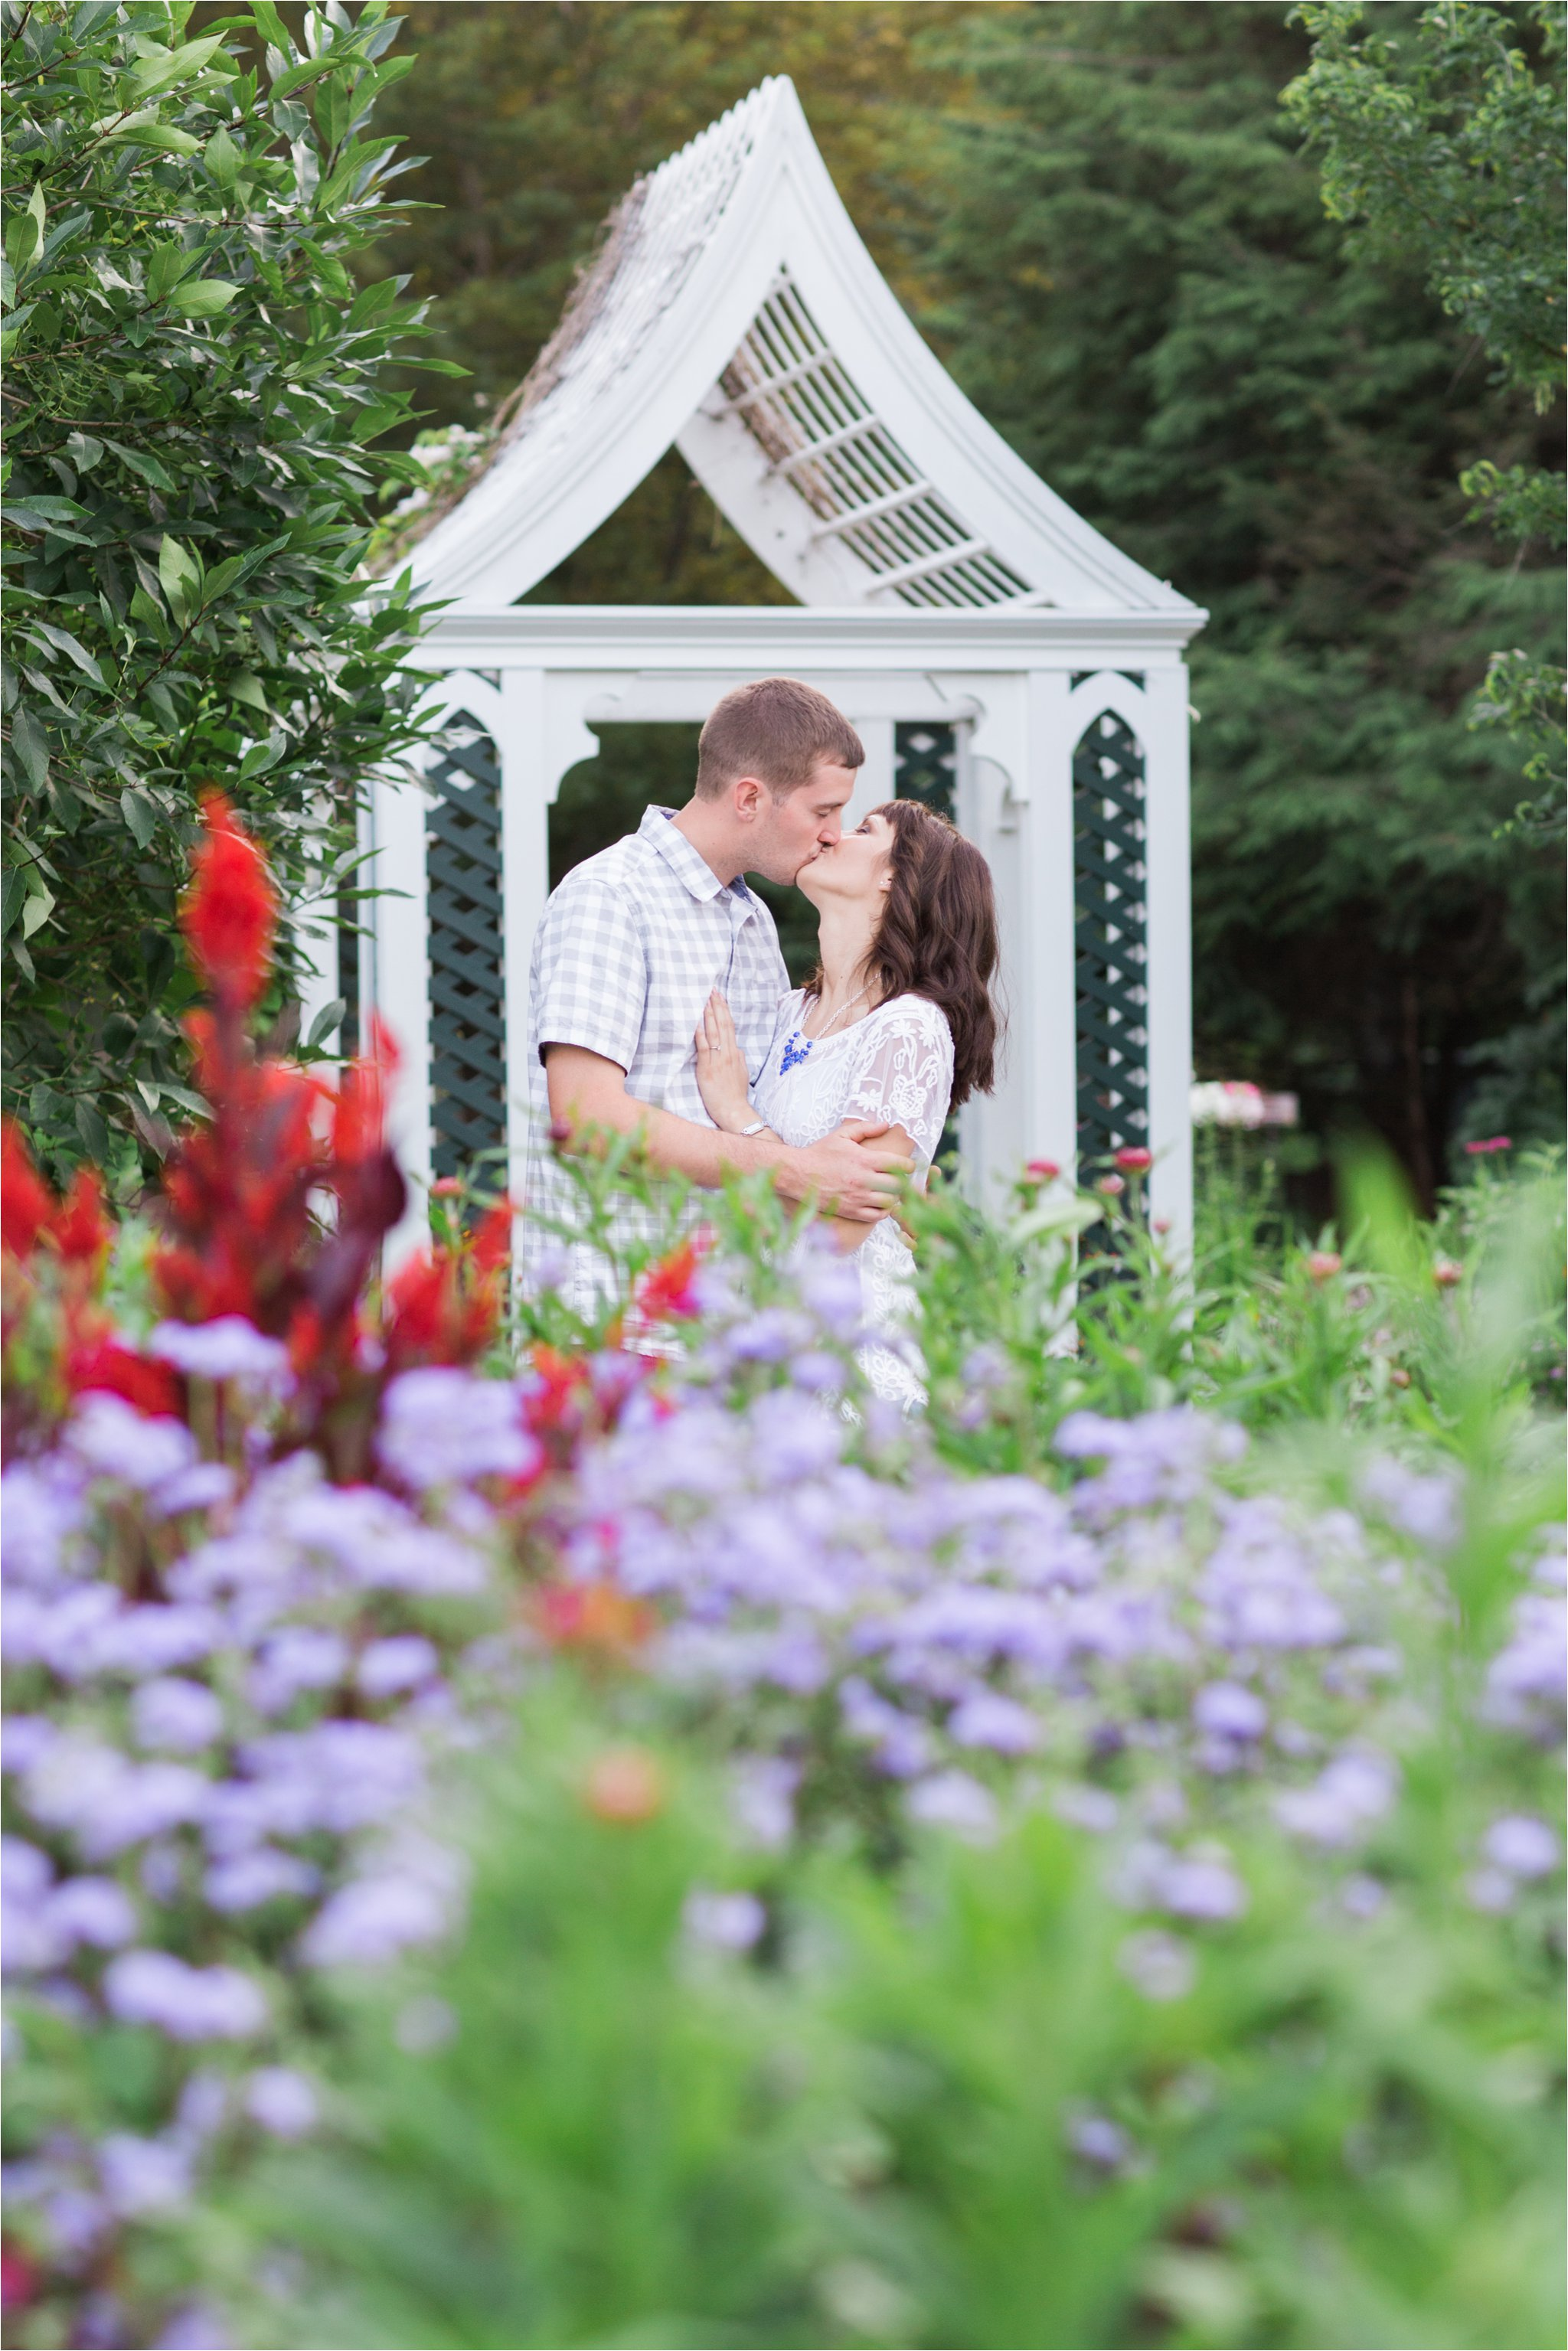 Engaged Couple Kissing in Garden (C) Maundy Mitchell